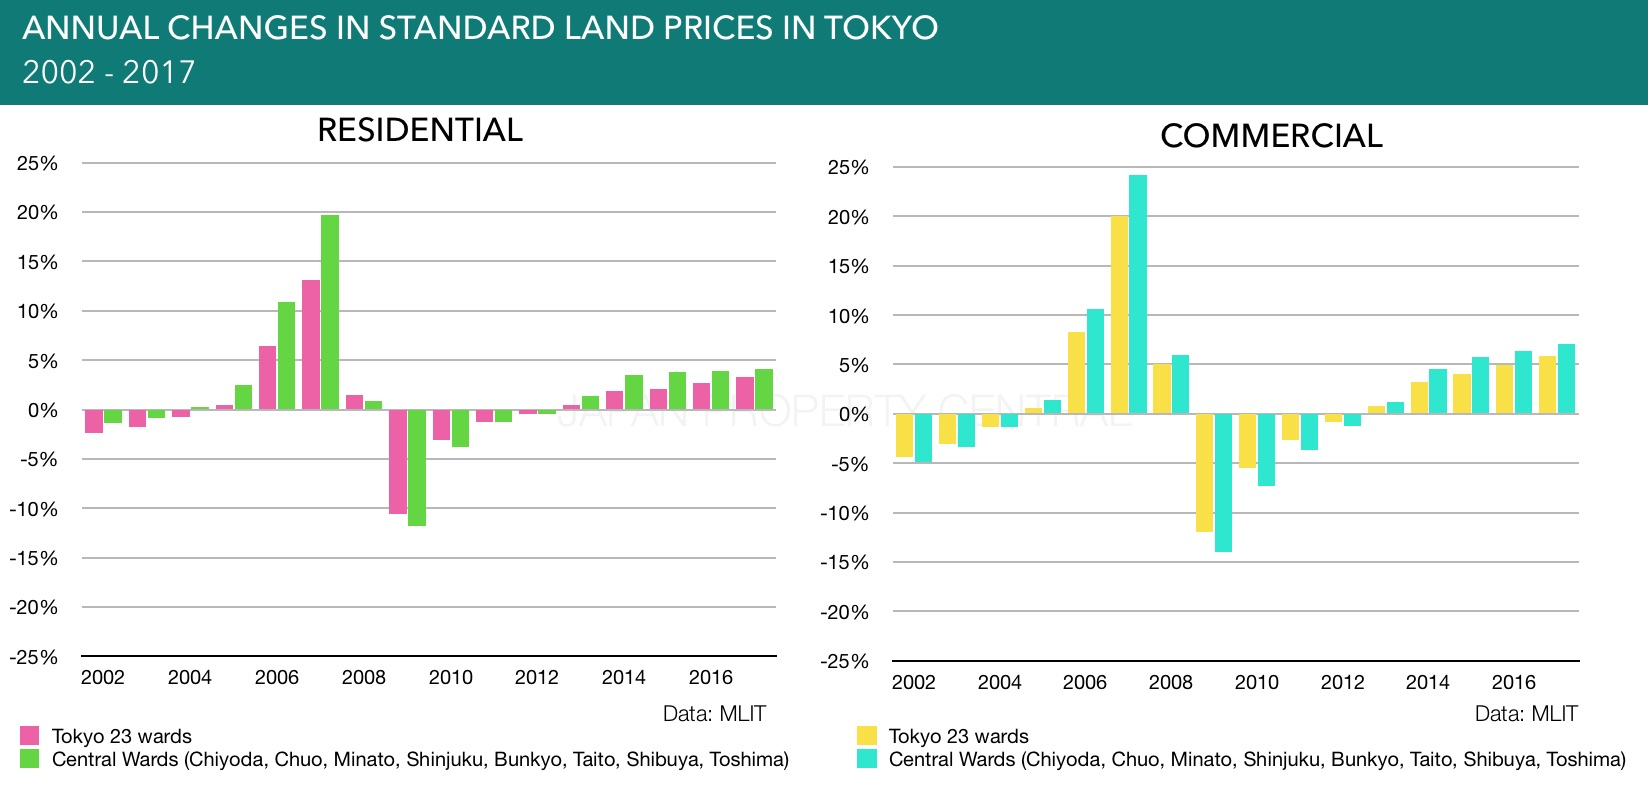 Standard land prices in Tokyo increase for 5th year in a row, while nationwide commercial prices increase for first time in 10 years